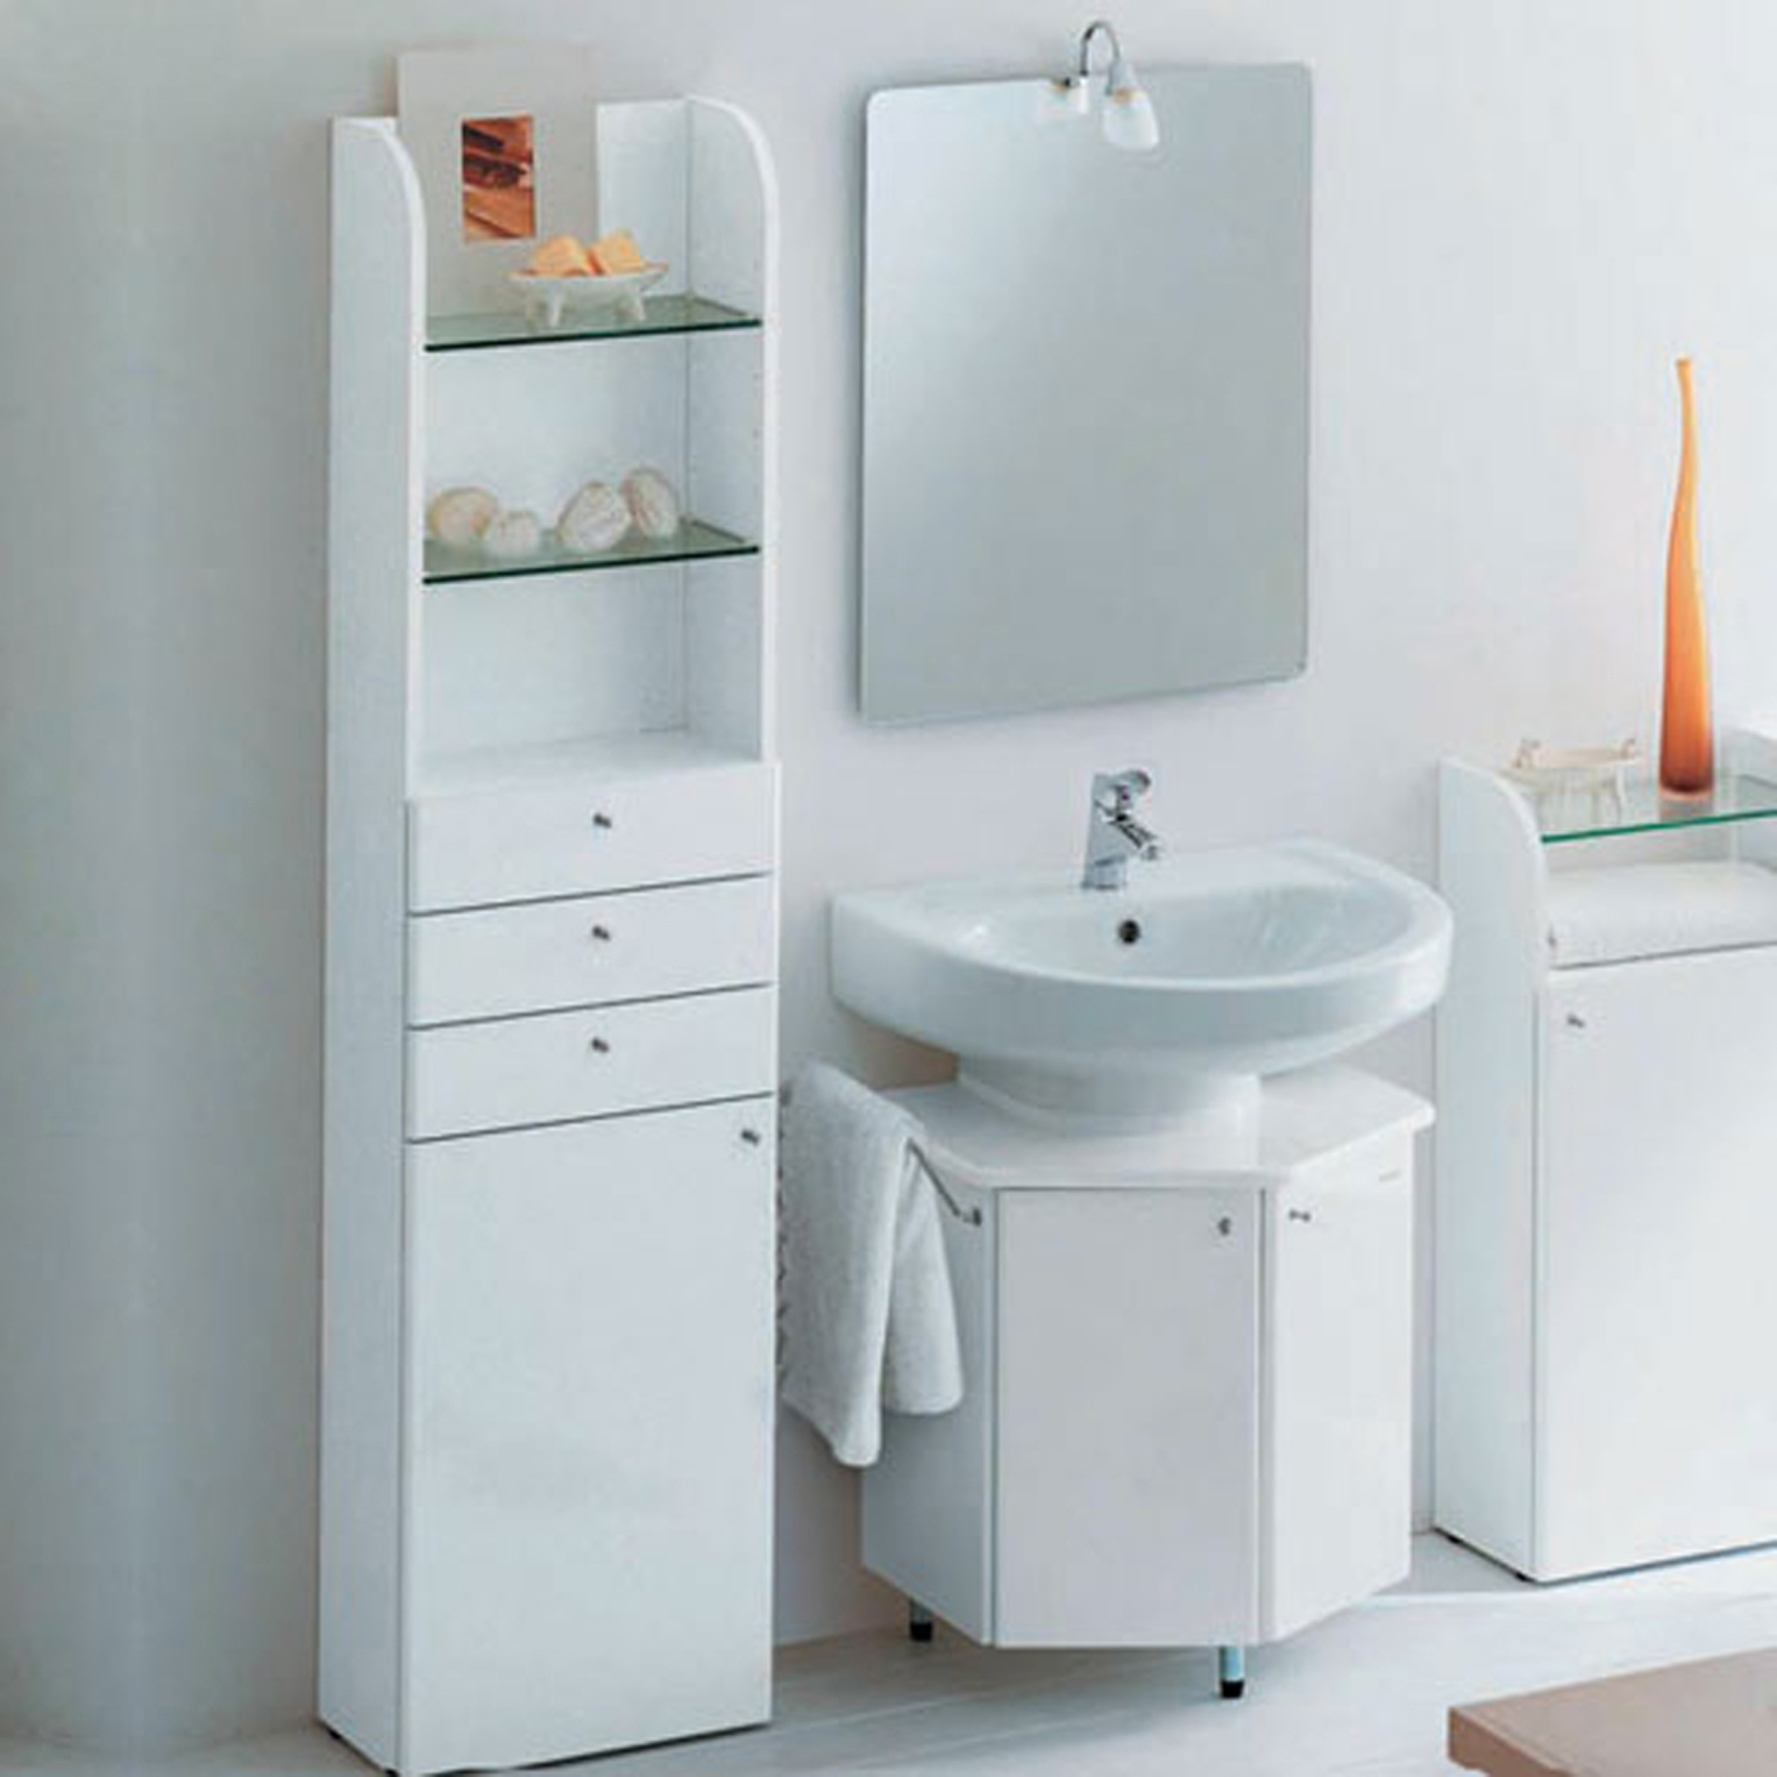 Small Bathroom Cabinet For Storage